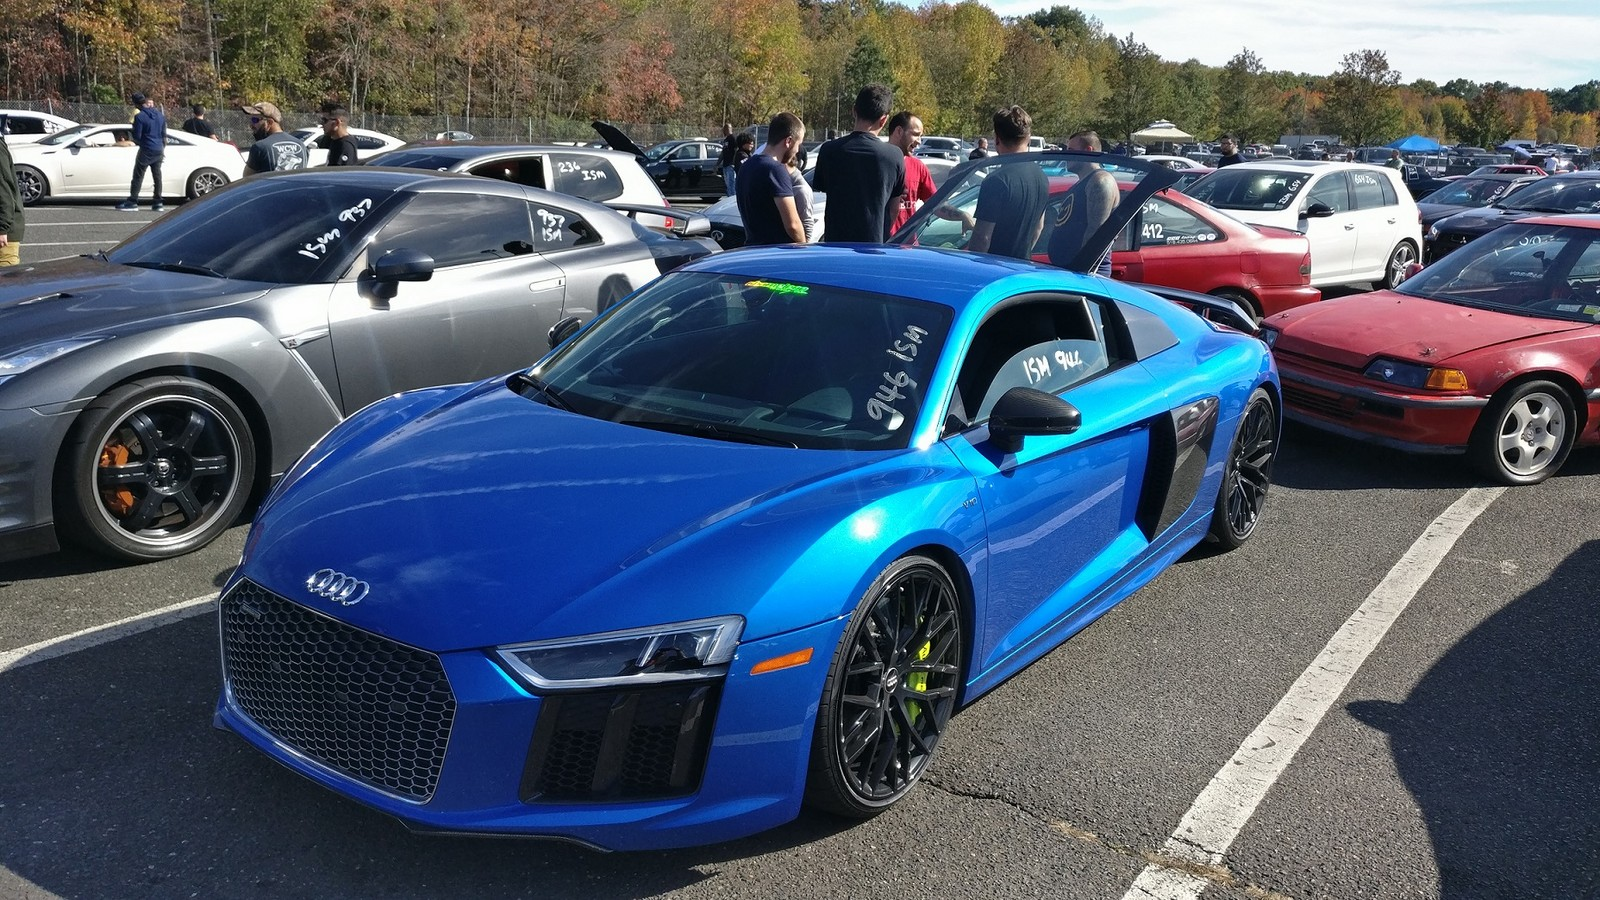 2017 audi r8 v10 plus 1/4 mile drag racing timeslip specs 0-60